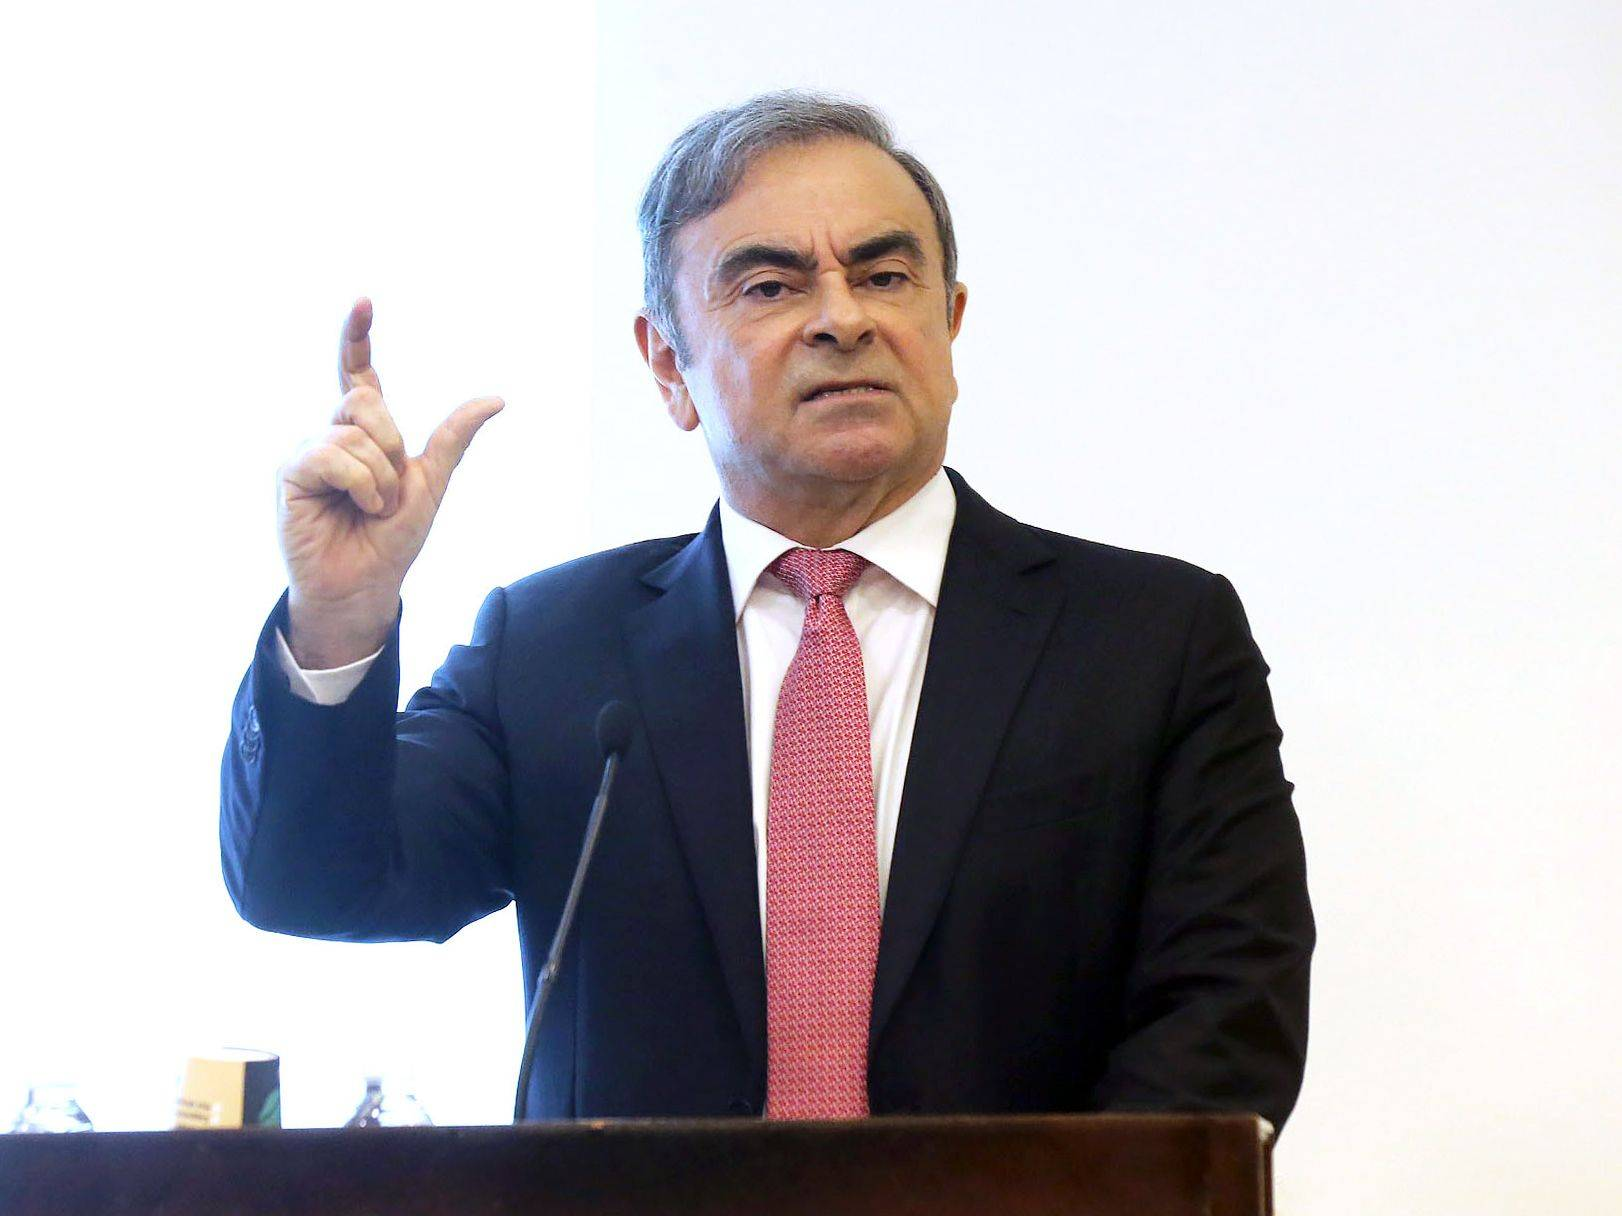 Carlos Ghosn, former chief executive officer of Nissan Motor Co. and Renault SA, gestures as he speaks to the media at the Lebanese Press Syndicate in Beirut in January. | BLOOMBERG